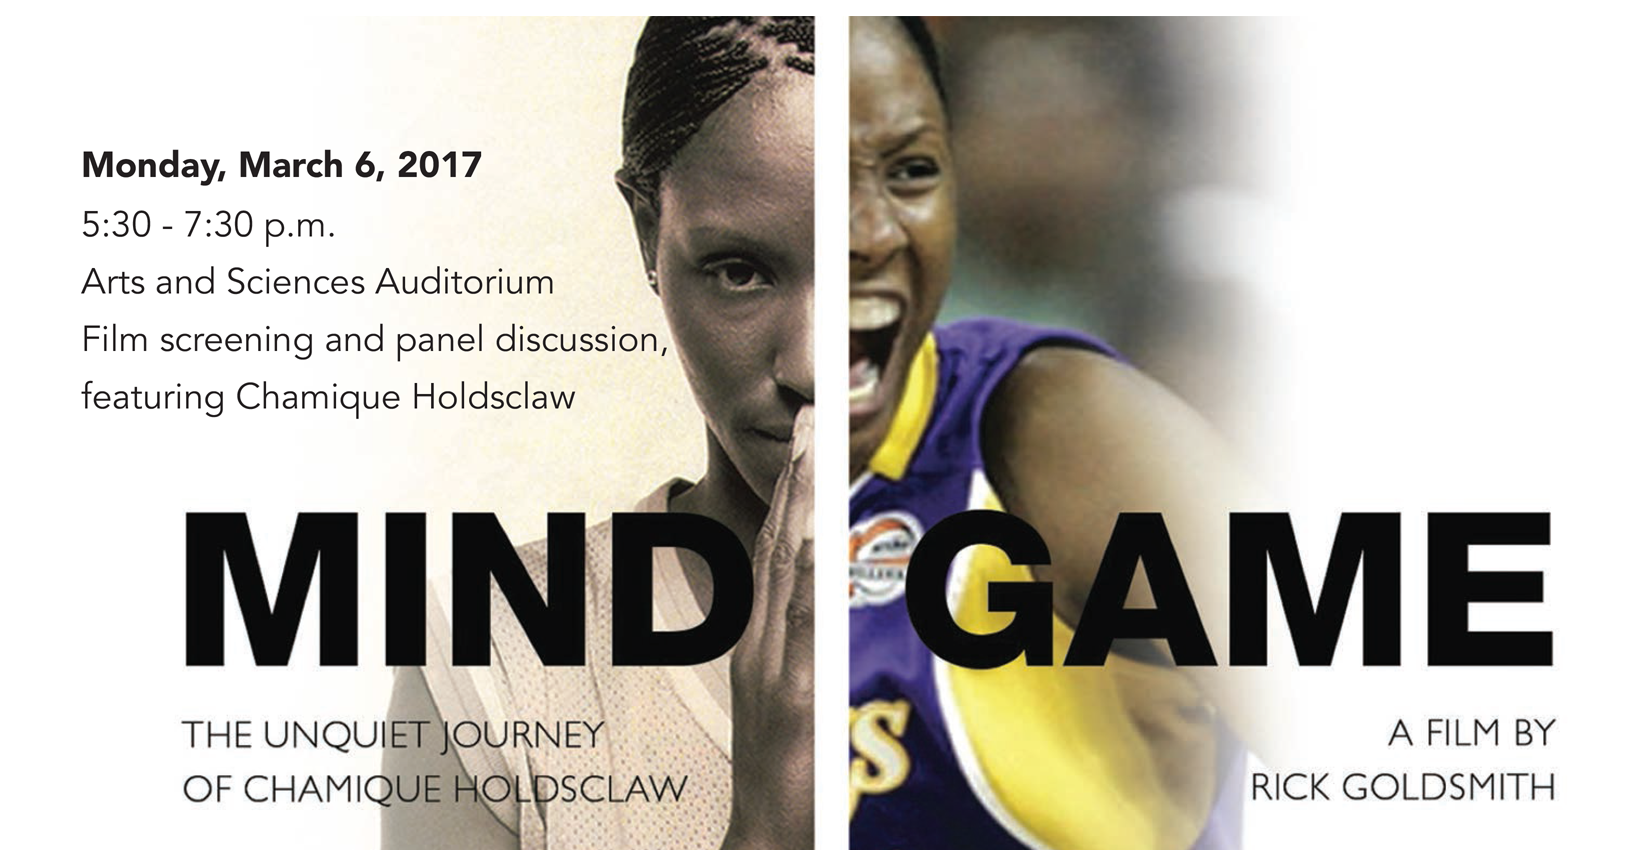 Promotional flyer for Chamique Holdsclaw event